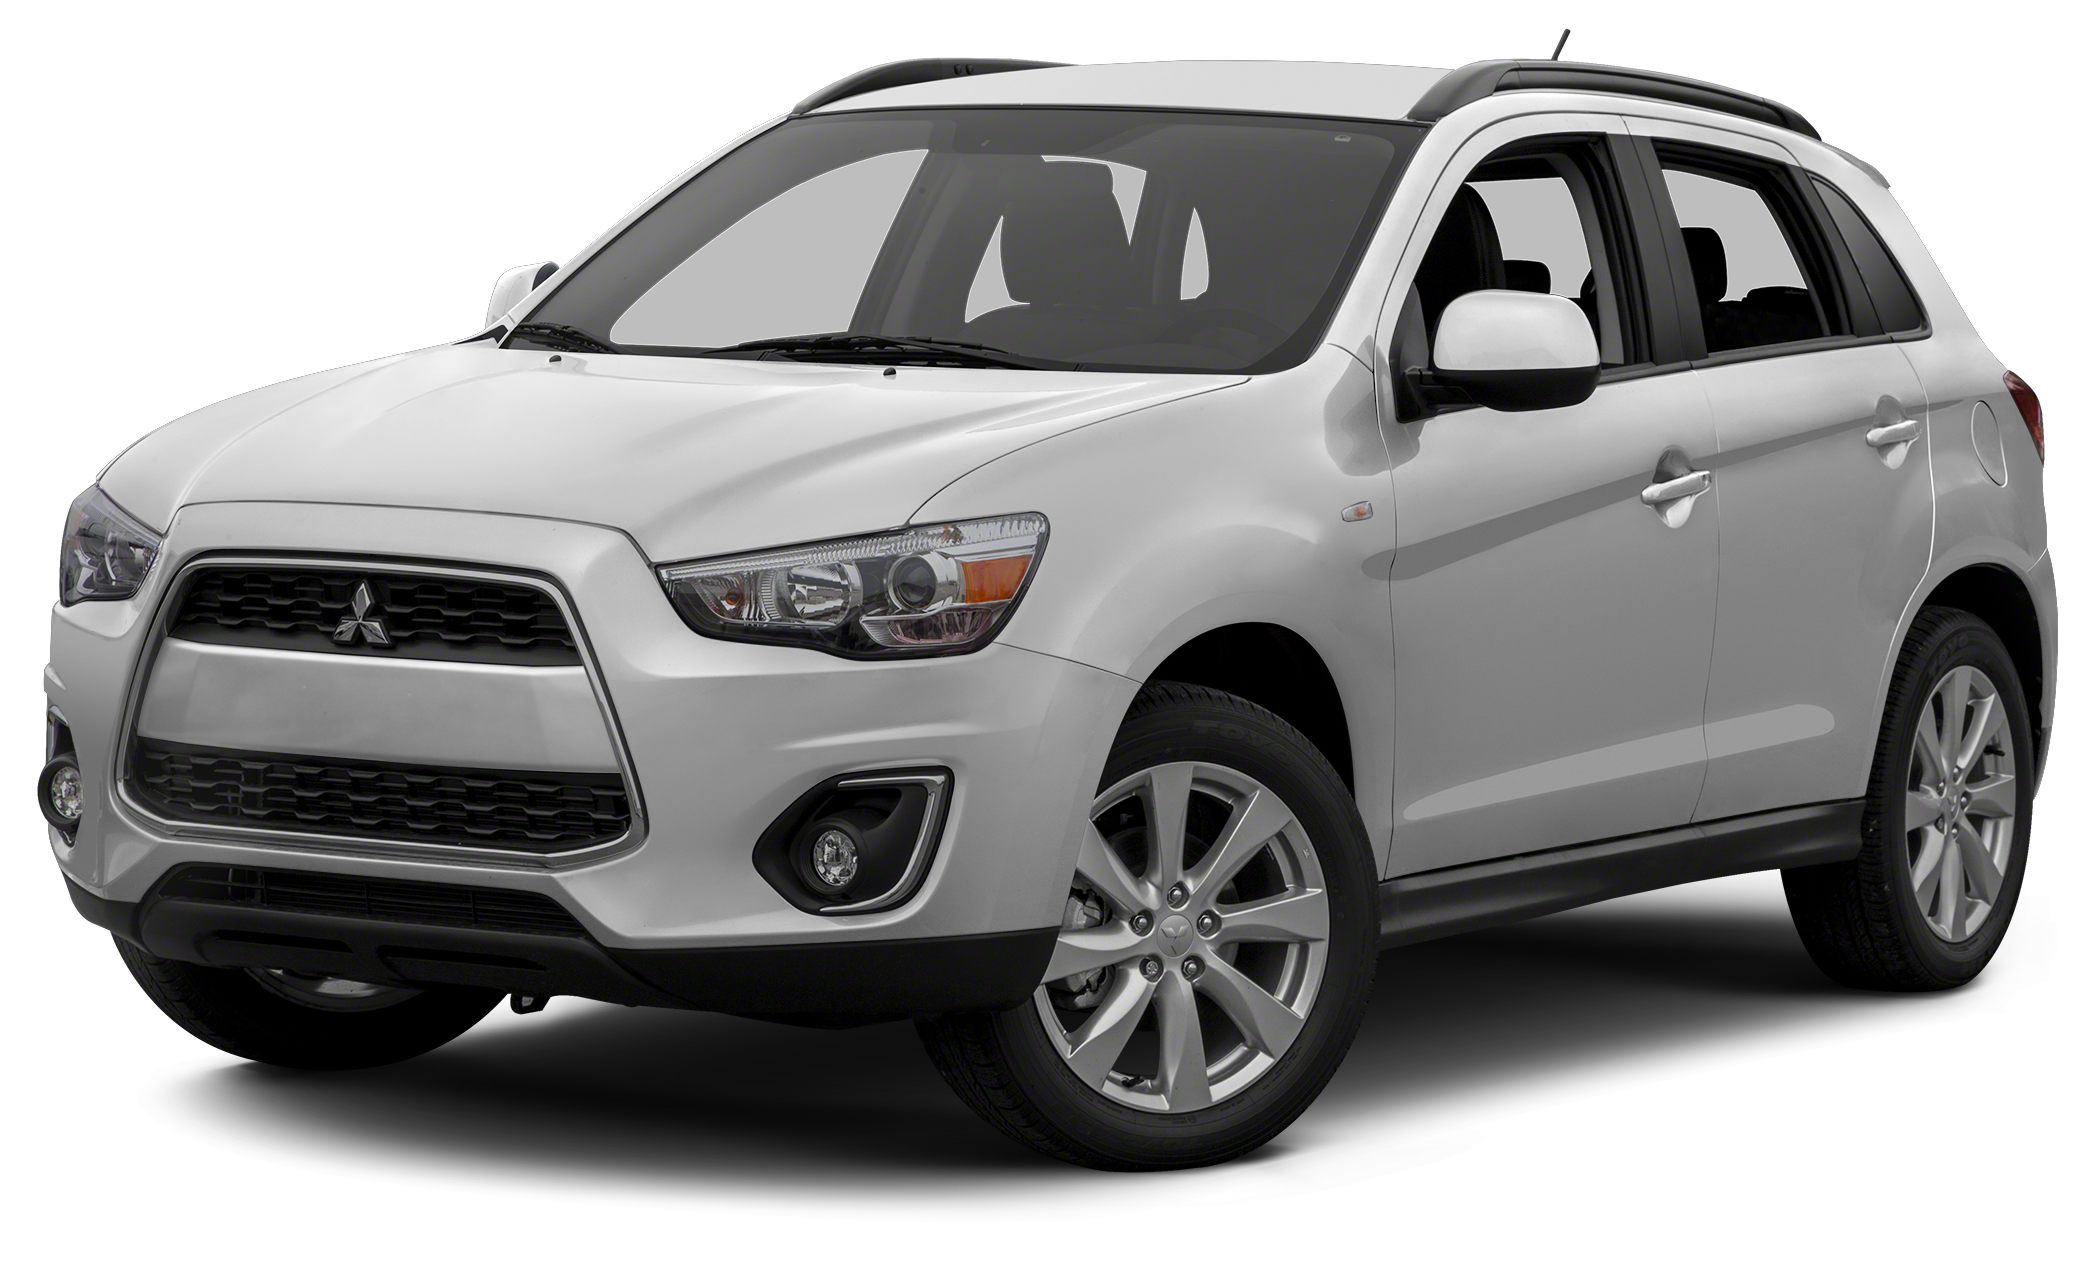 2013 Mitsubishi Outlander Sport SE New Arrival CARFAX 1-Owner Priced to sell at 2488 below the